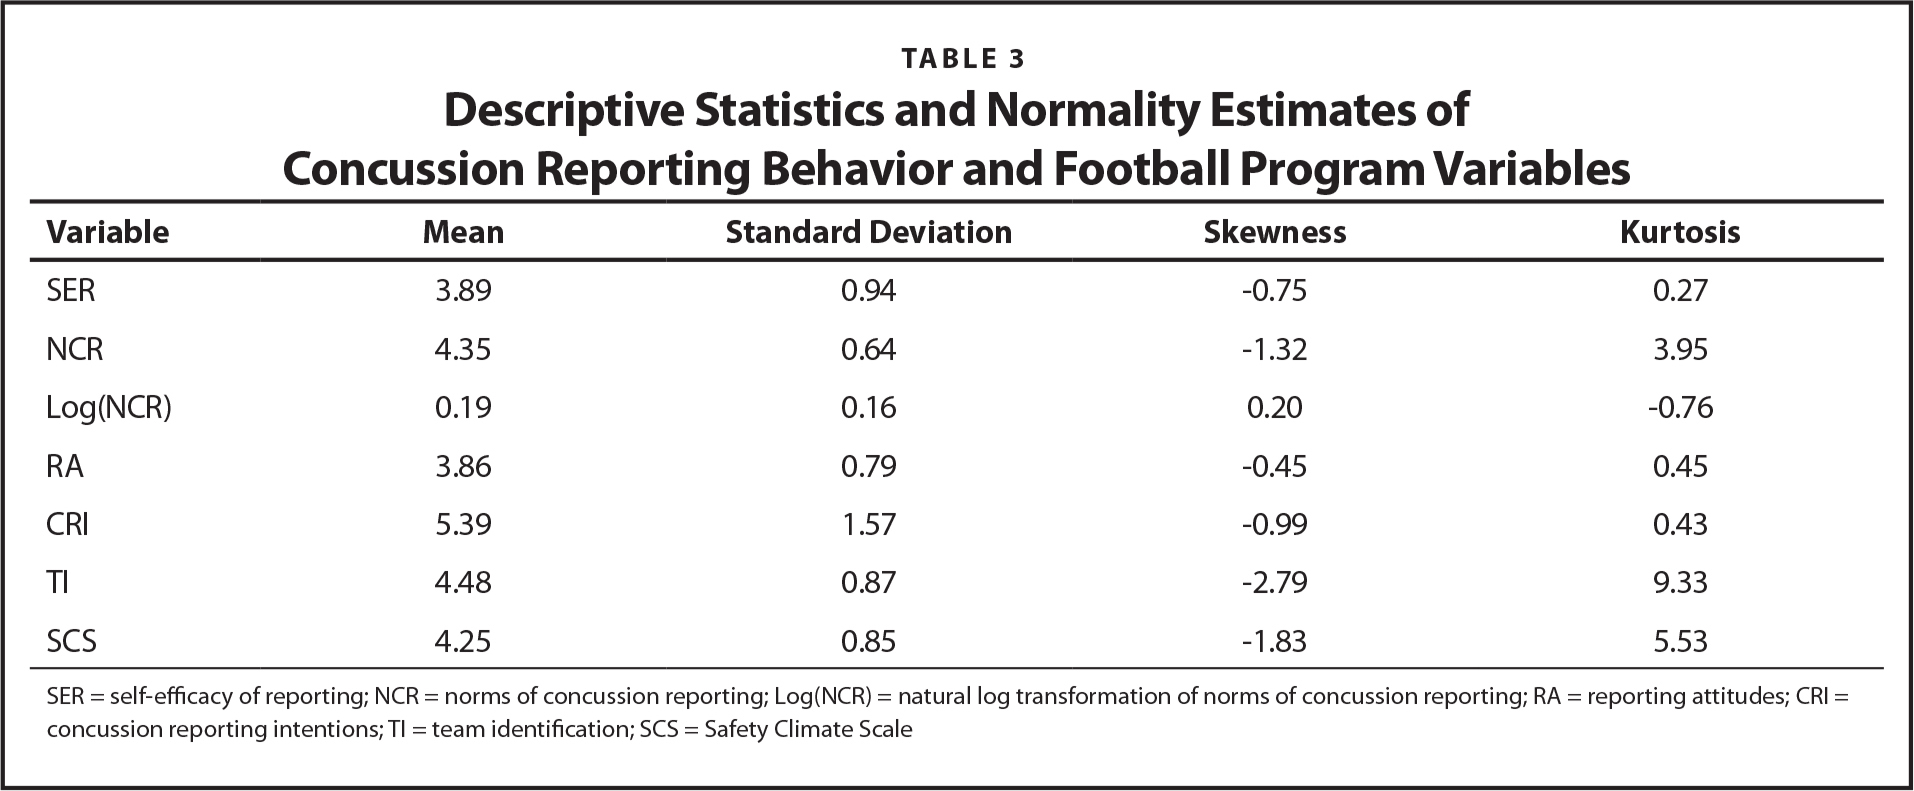 Descriptive Statistics and Normality Estimates of Concussion Reporting Behavior and Football Program Variables